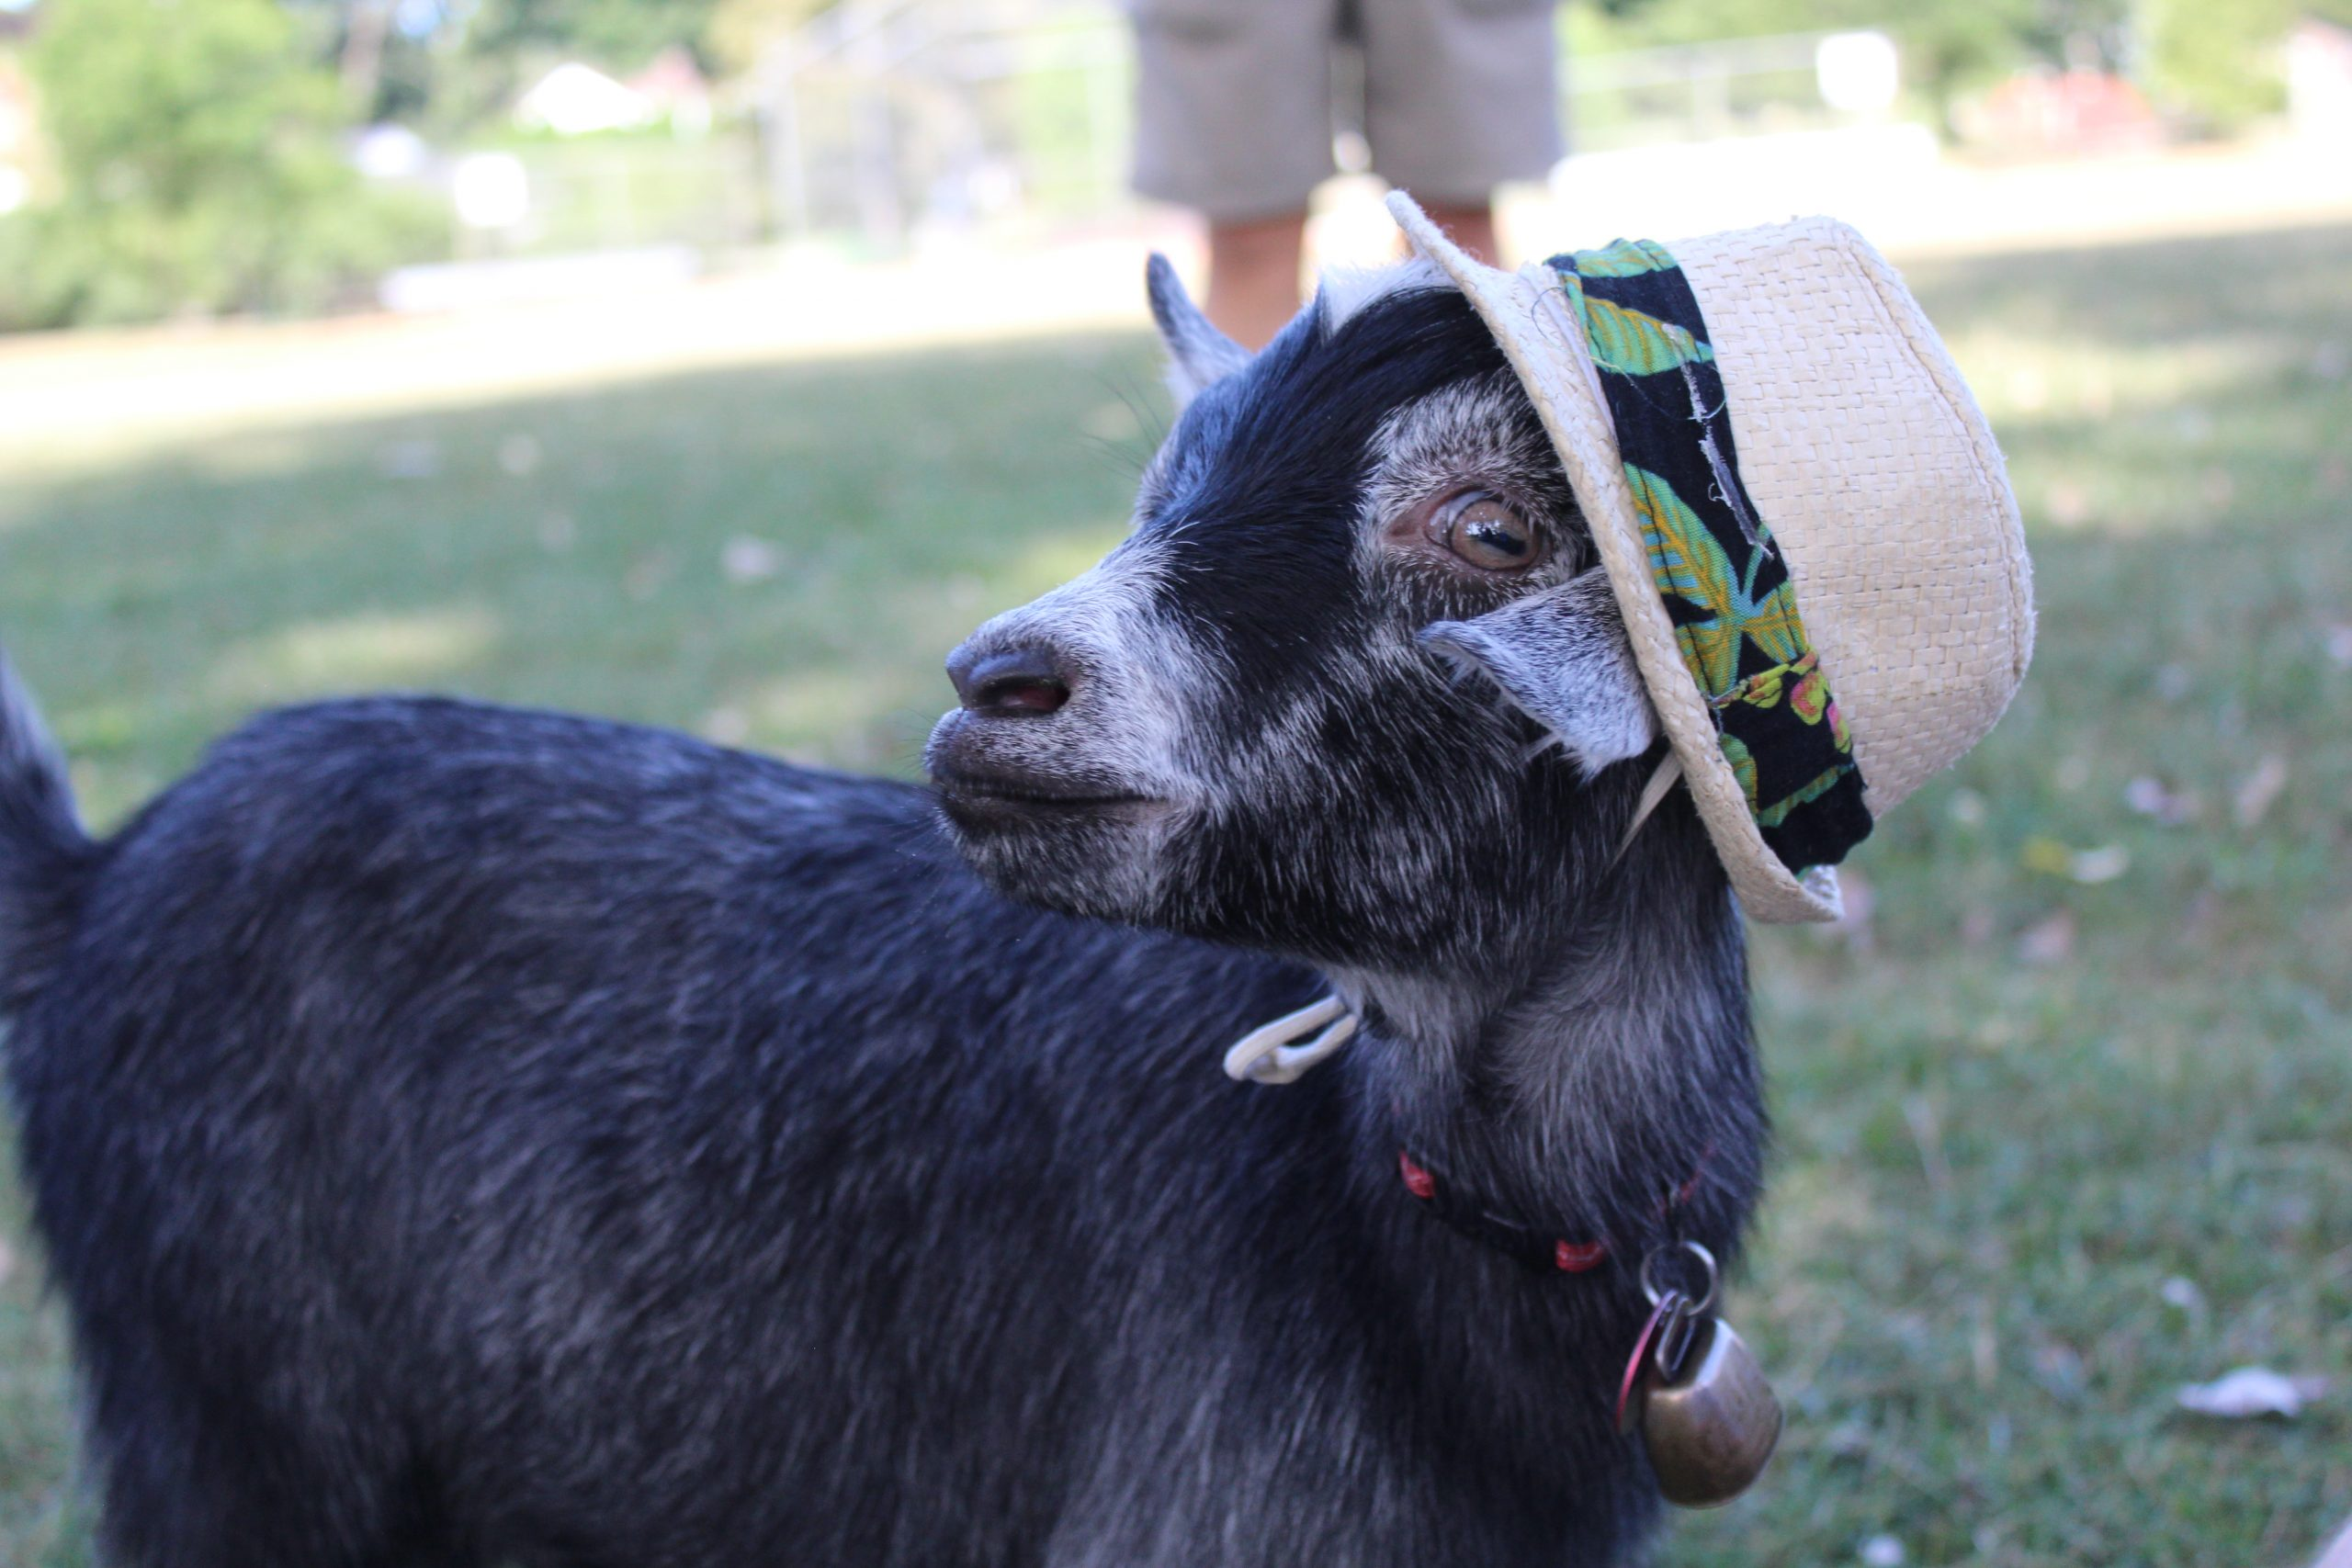 Meet Arnie, the Pygmy goat trotting around Highland Square